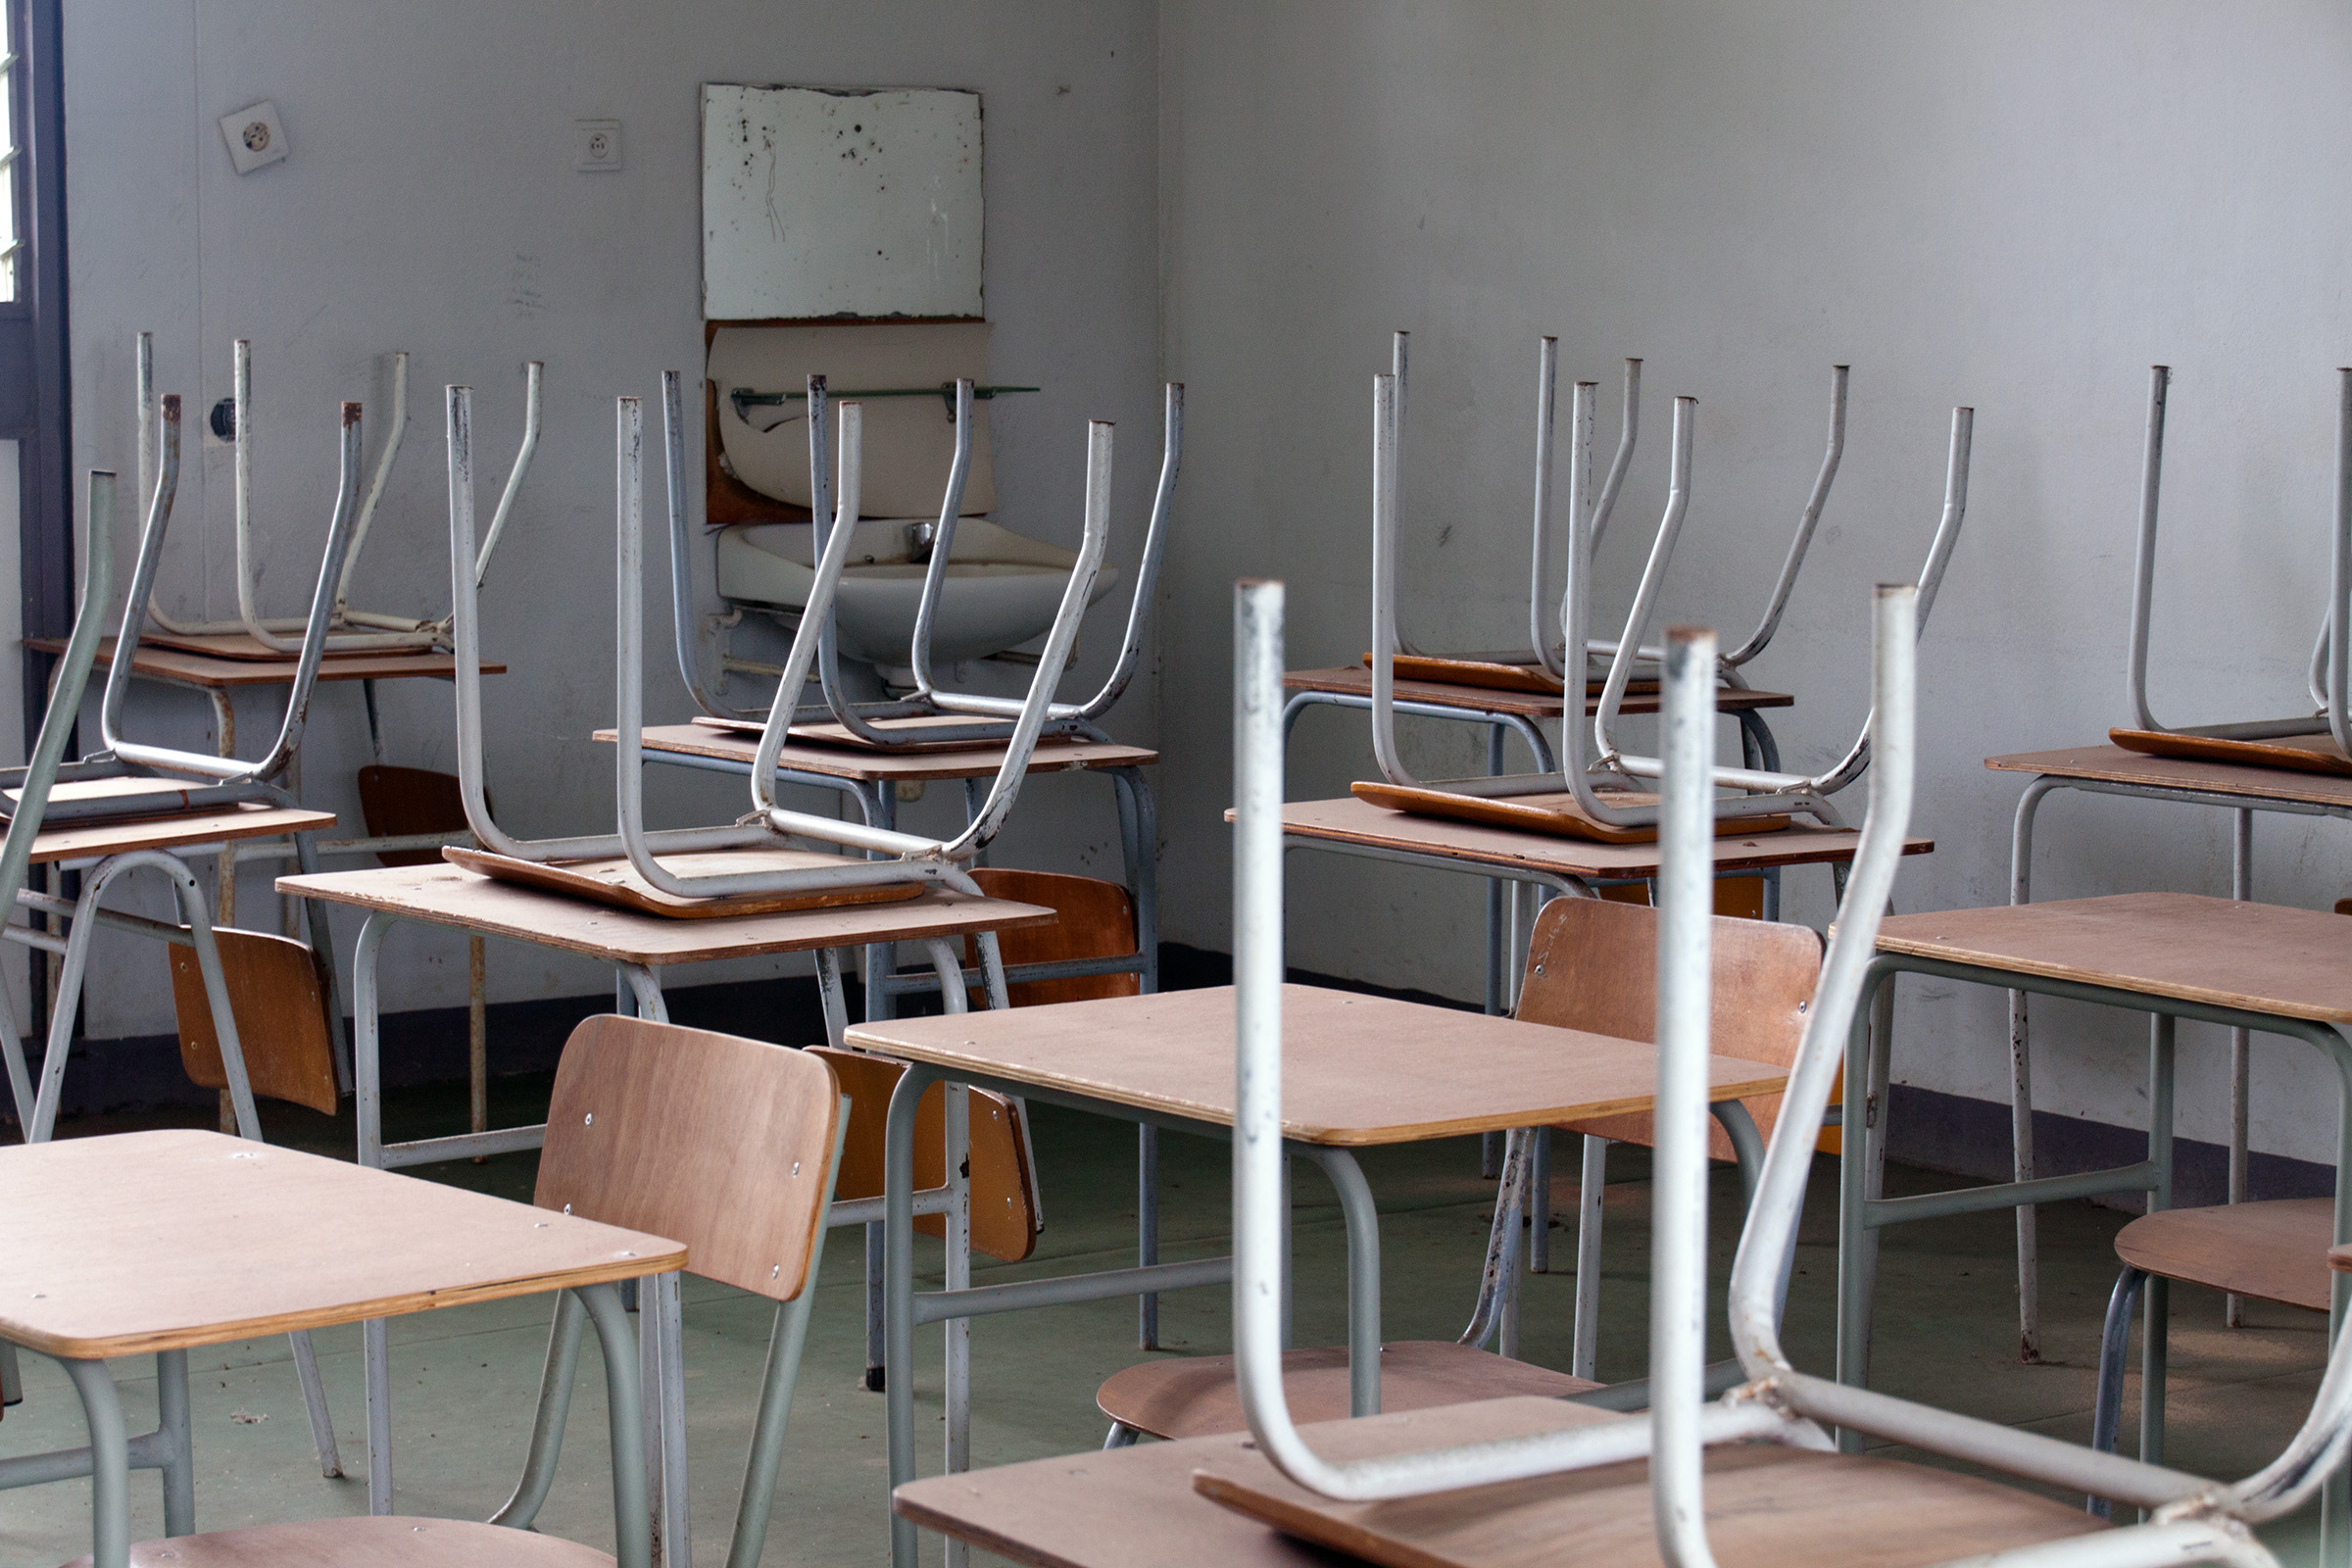 Empty classroom, Abandoned, Wall, Vertical, Training, HQ Photo